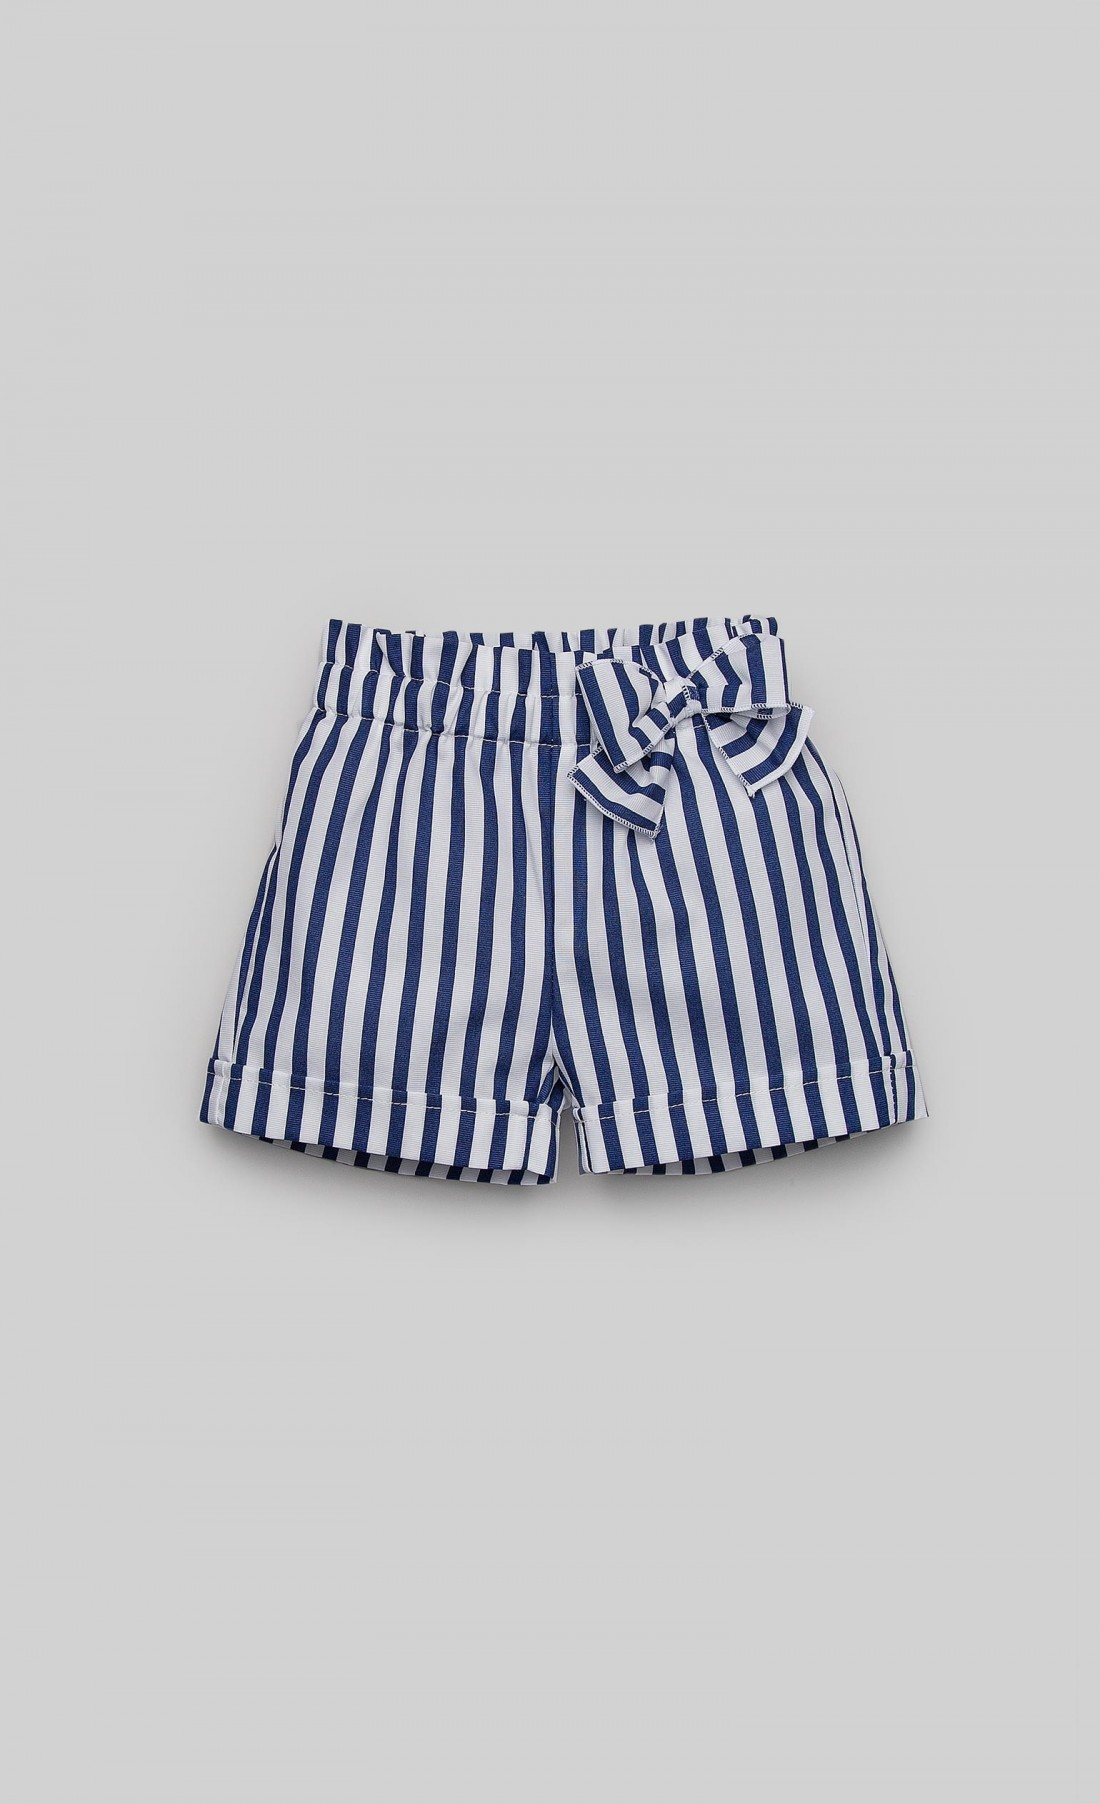 Short trousers in white and blue striped poplin